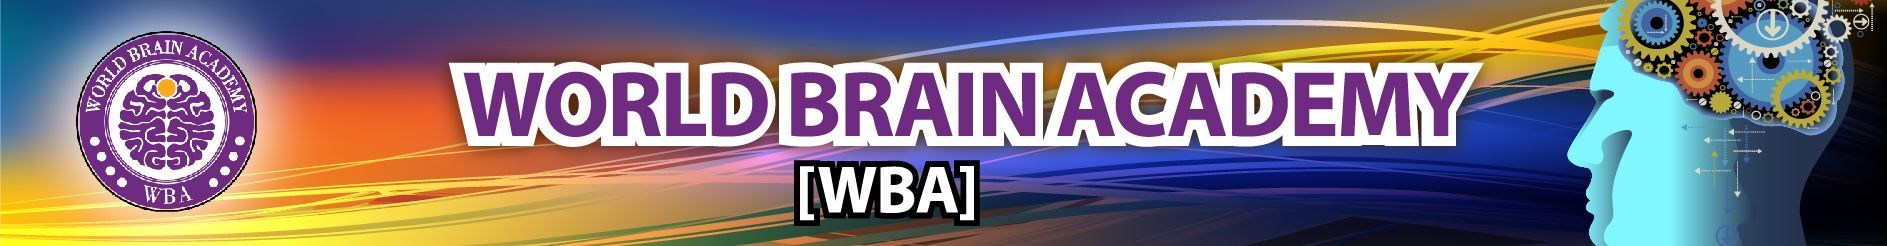 WORLD BRAIN ACADEMY